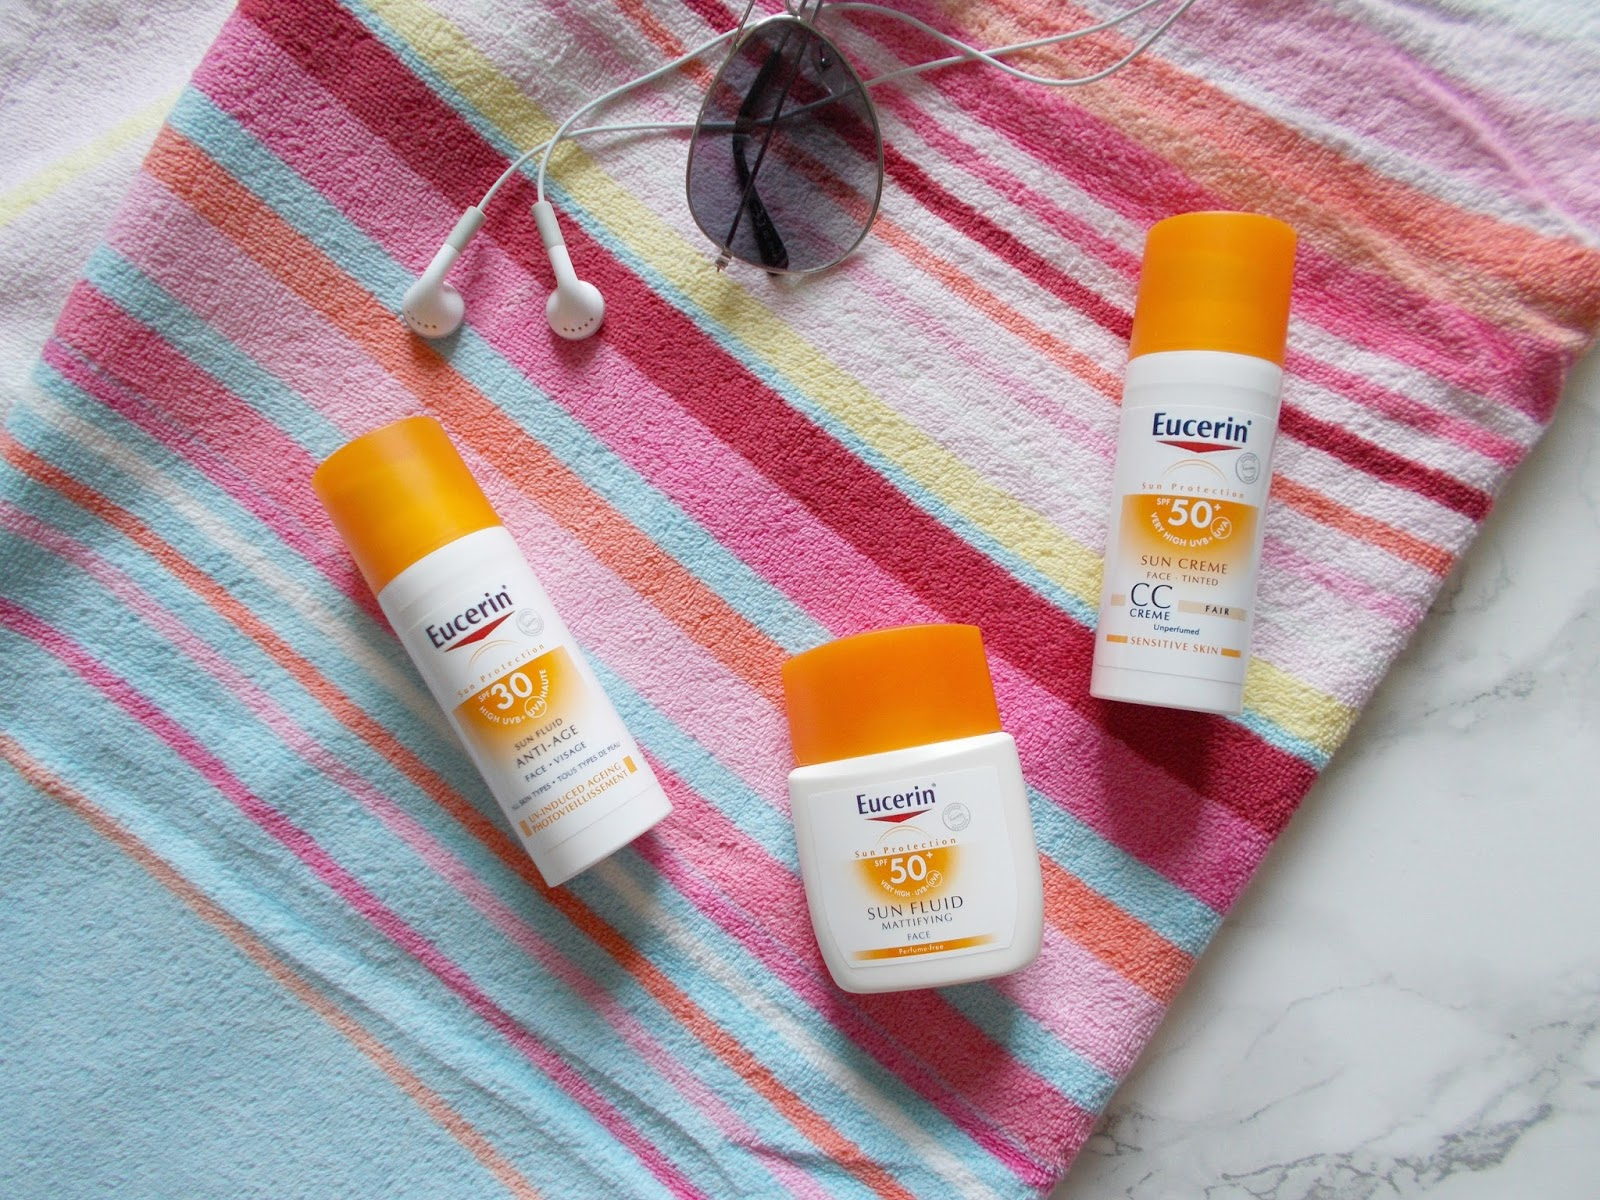 Eucerin sun fluid anti age mattifying cc sun cream spf facial sun protection review